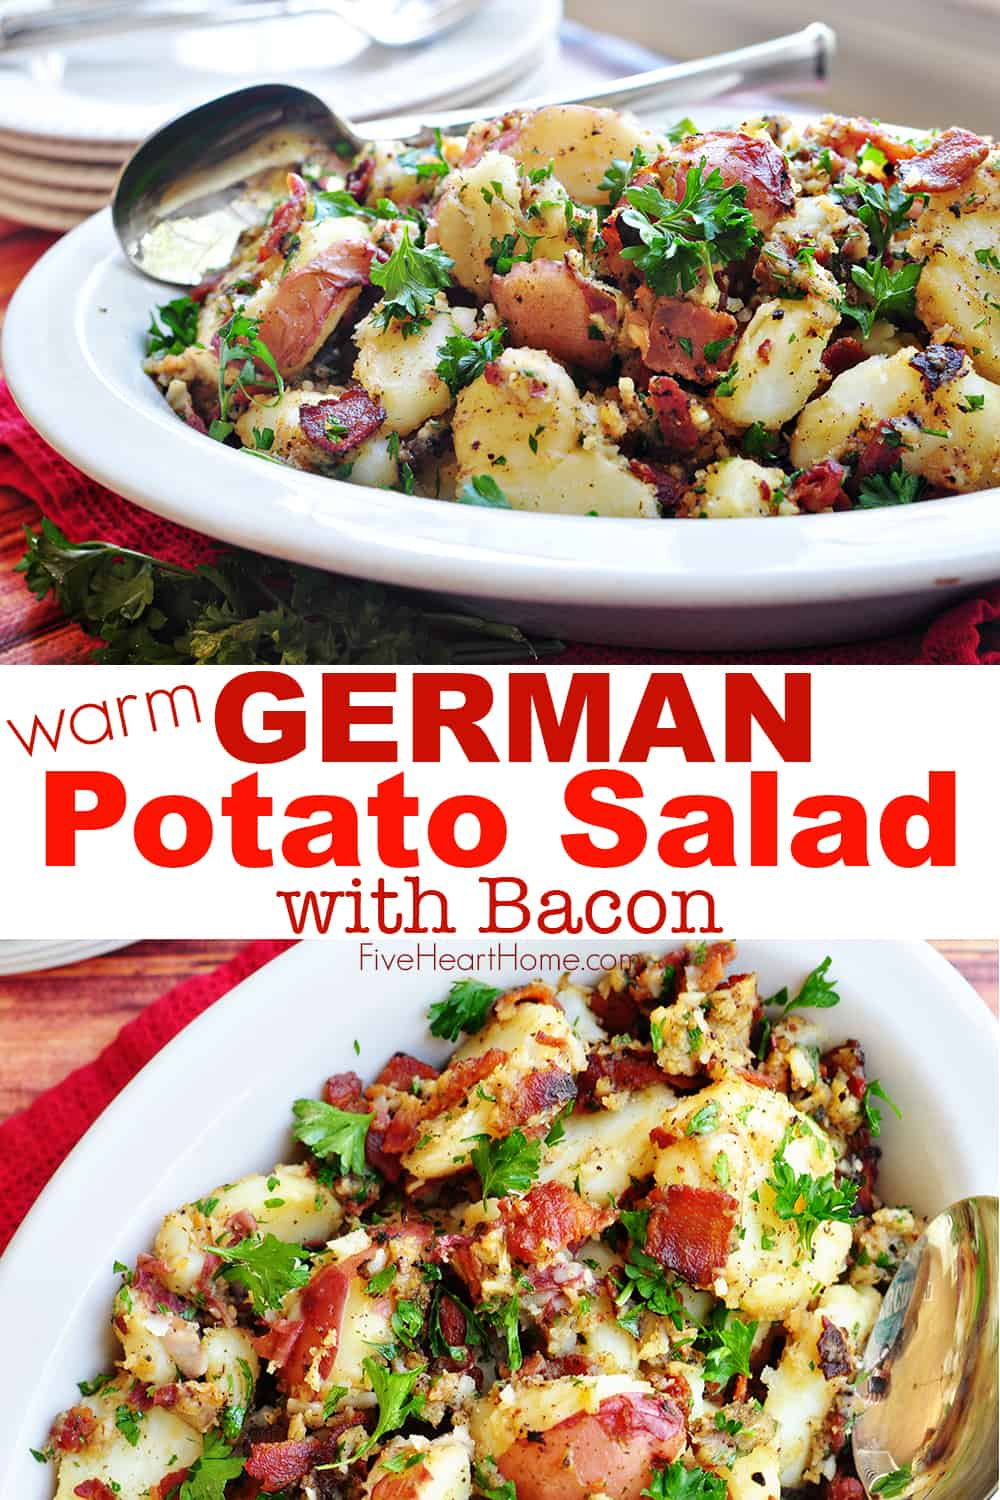 THE BEST German Potato Salad ~ a warm potato salad recipe featuring tender red potatoes and bacon in a tangy dressing for the ultimate summer side dish! | FiveHeartHome.com #germanpotatosalad